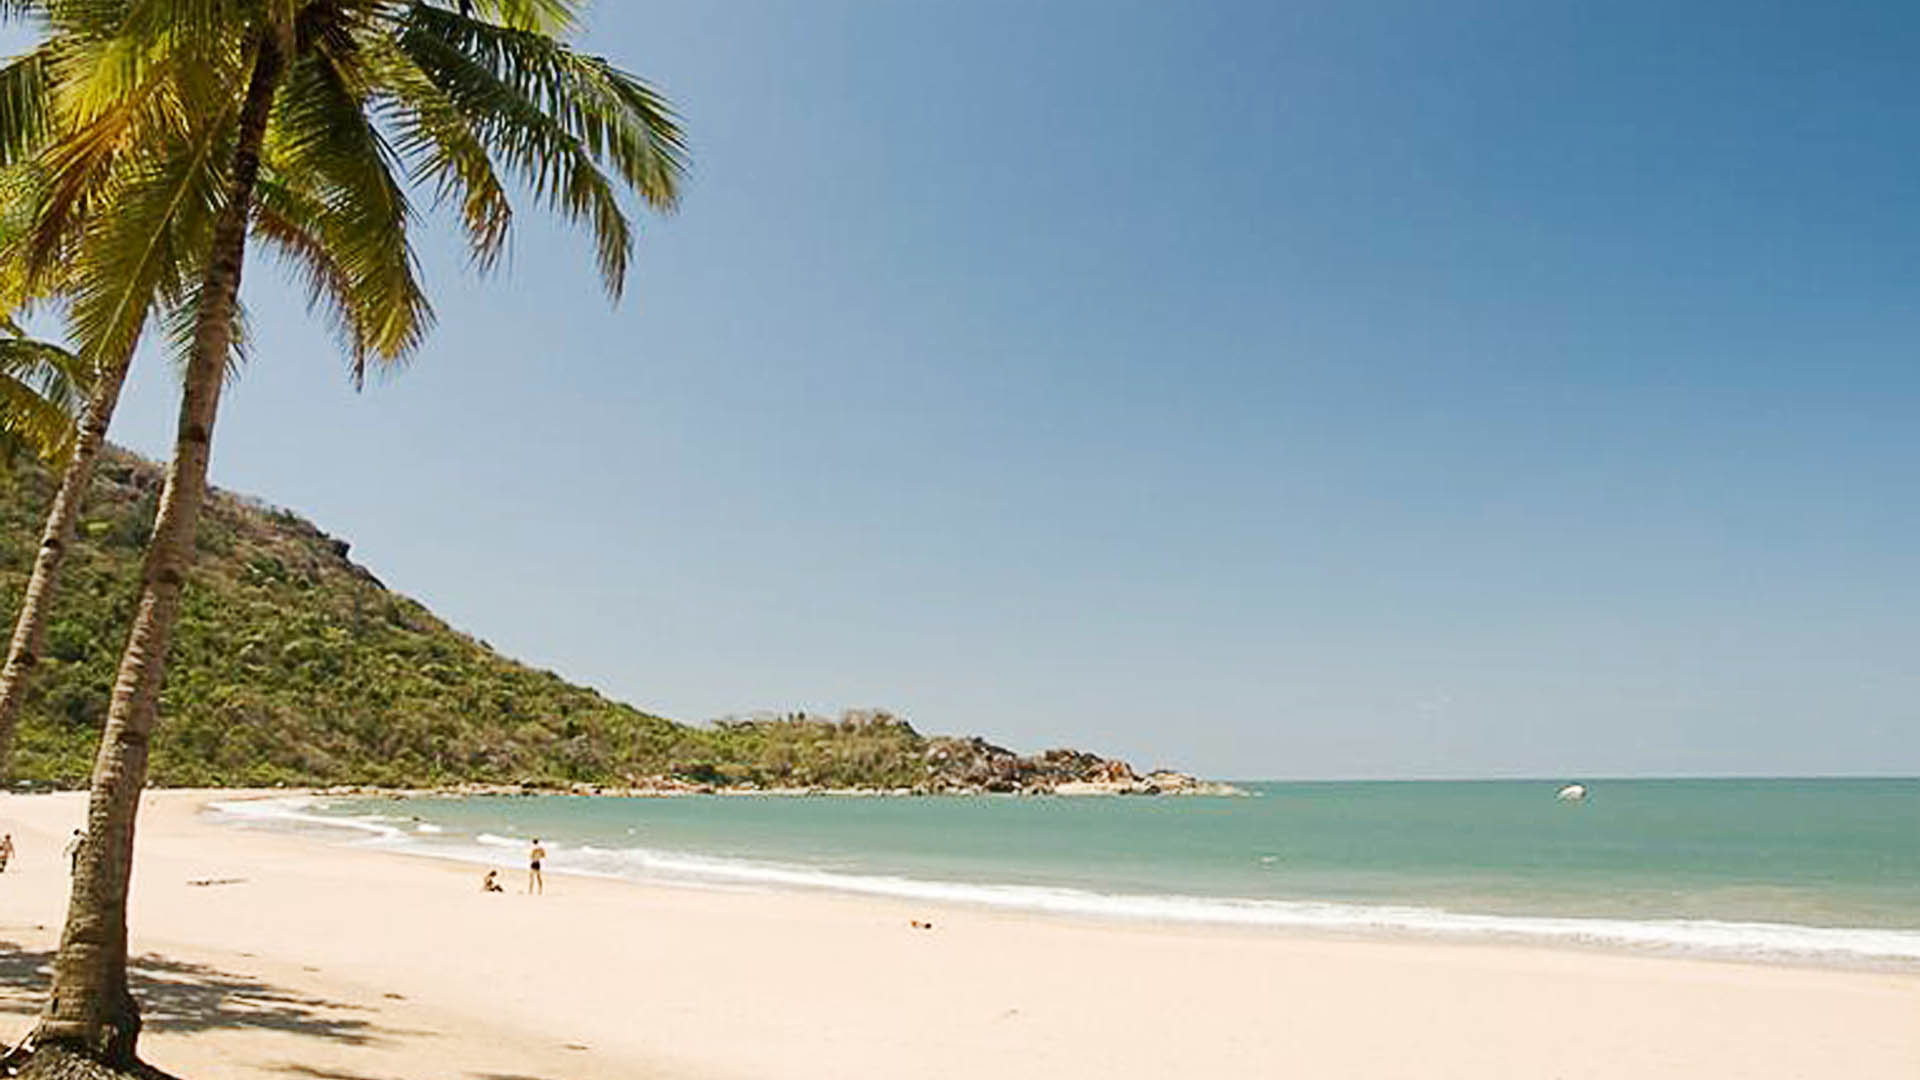 Agonda Beach in Goa. Photo credits: www.tripbucket.com